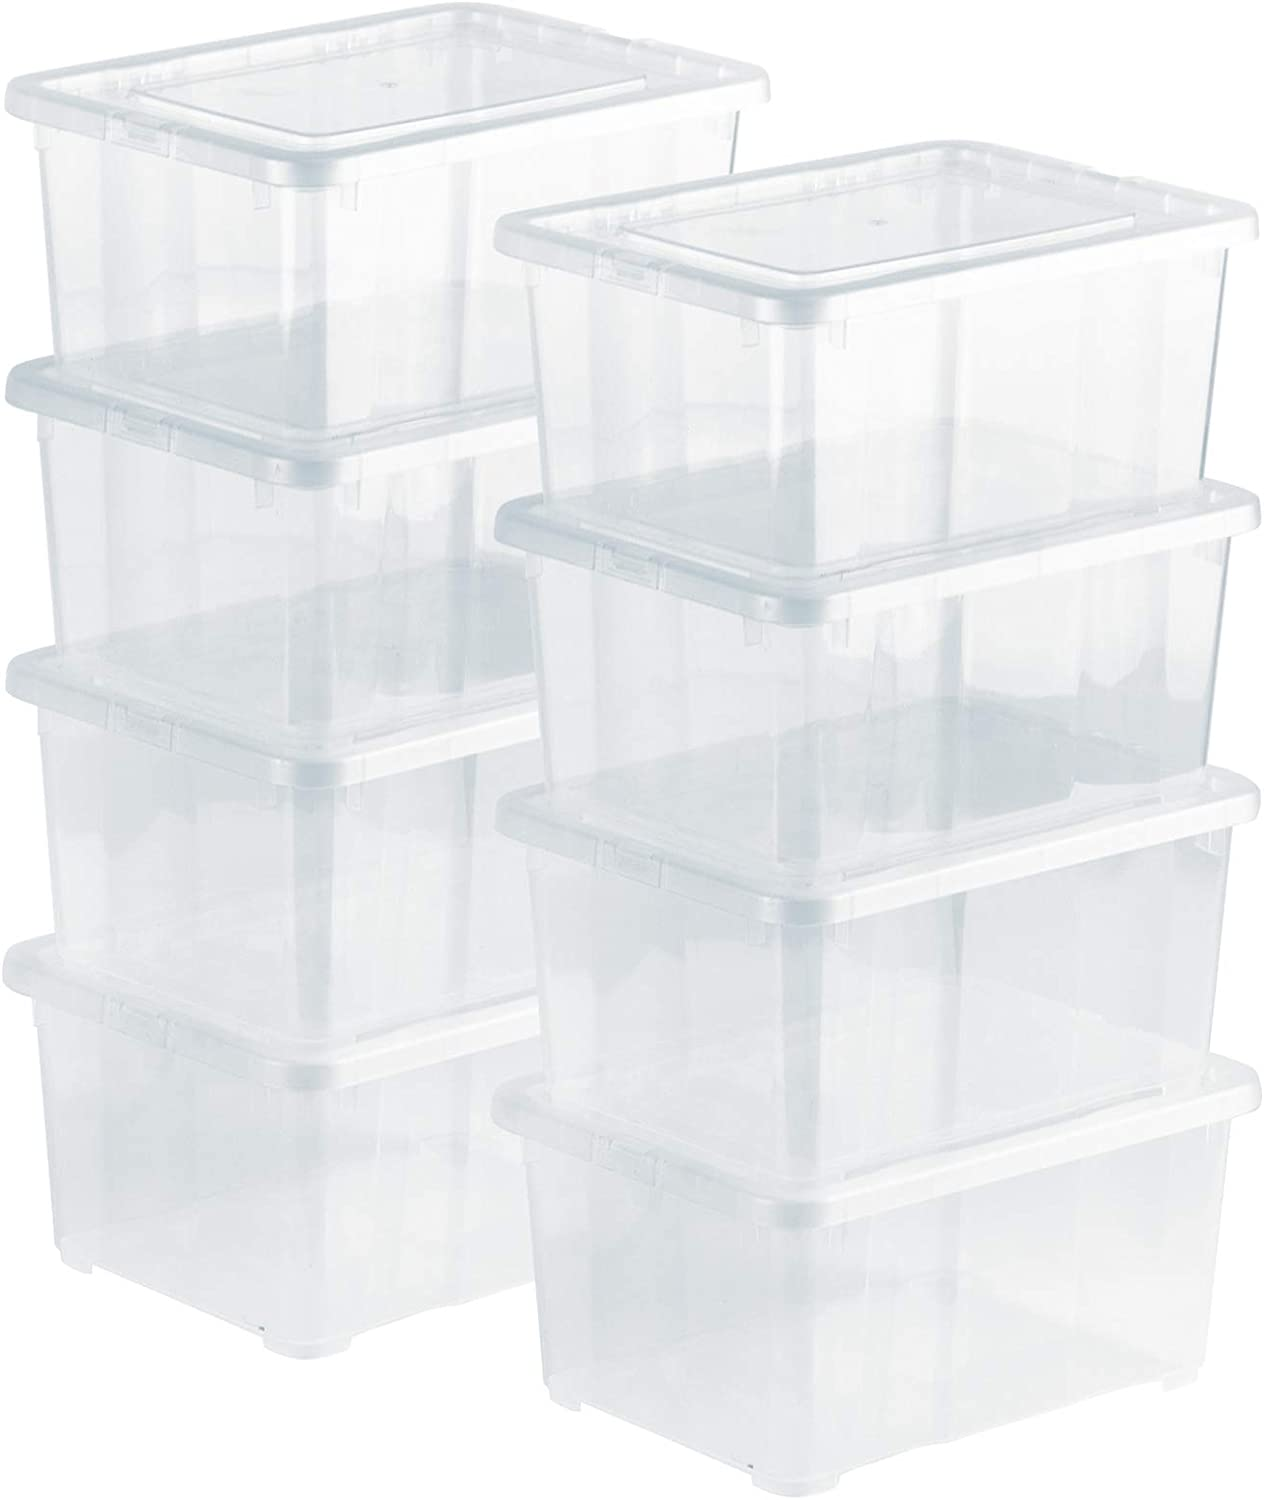 Grizzly 8 x Small Organizing Boxes with Lids - 1.7 Litre - 7.5x5.7x3.5 inch (19x14.5x9 cm) - Stackable Clear Containers - Transparent Organiser